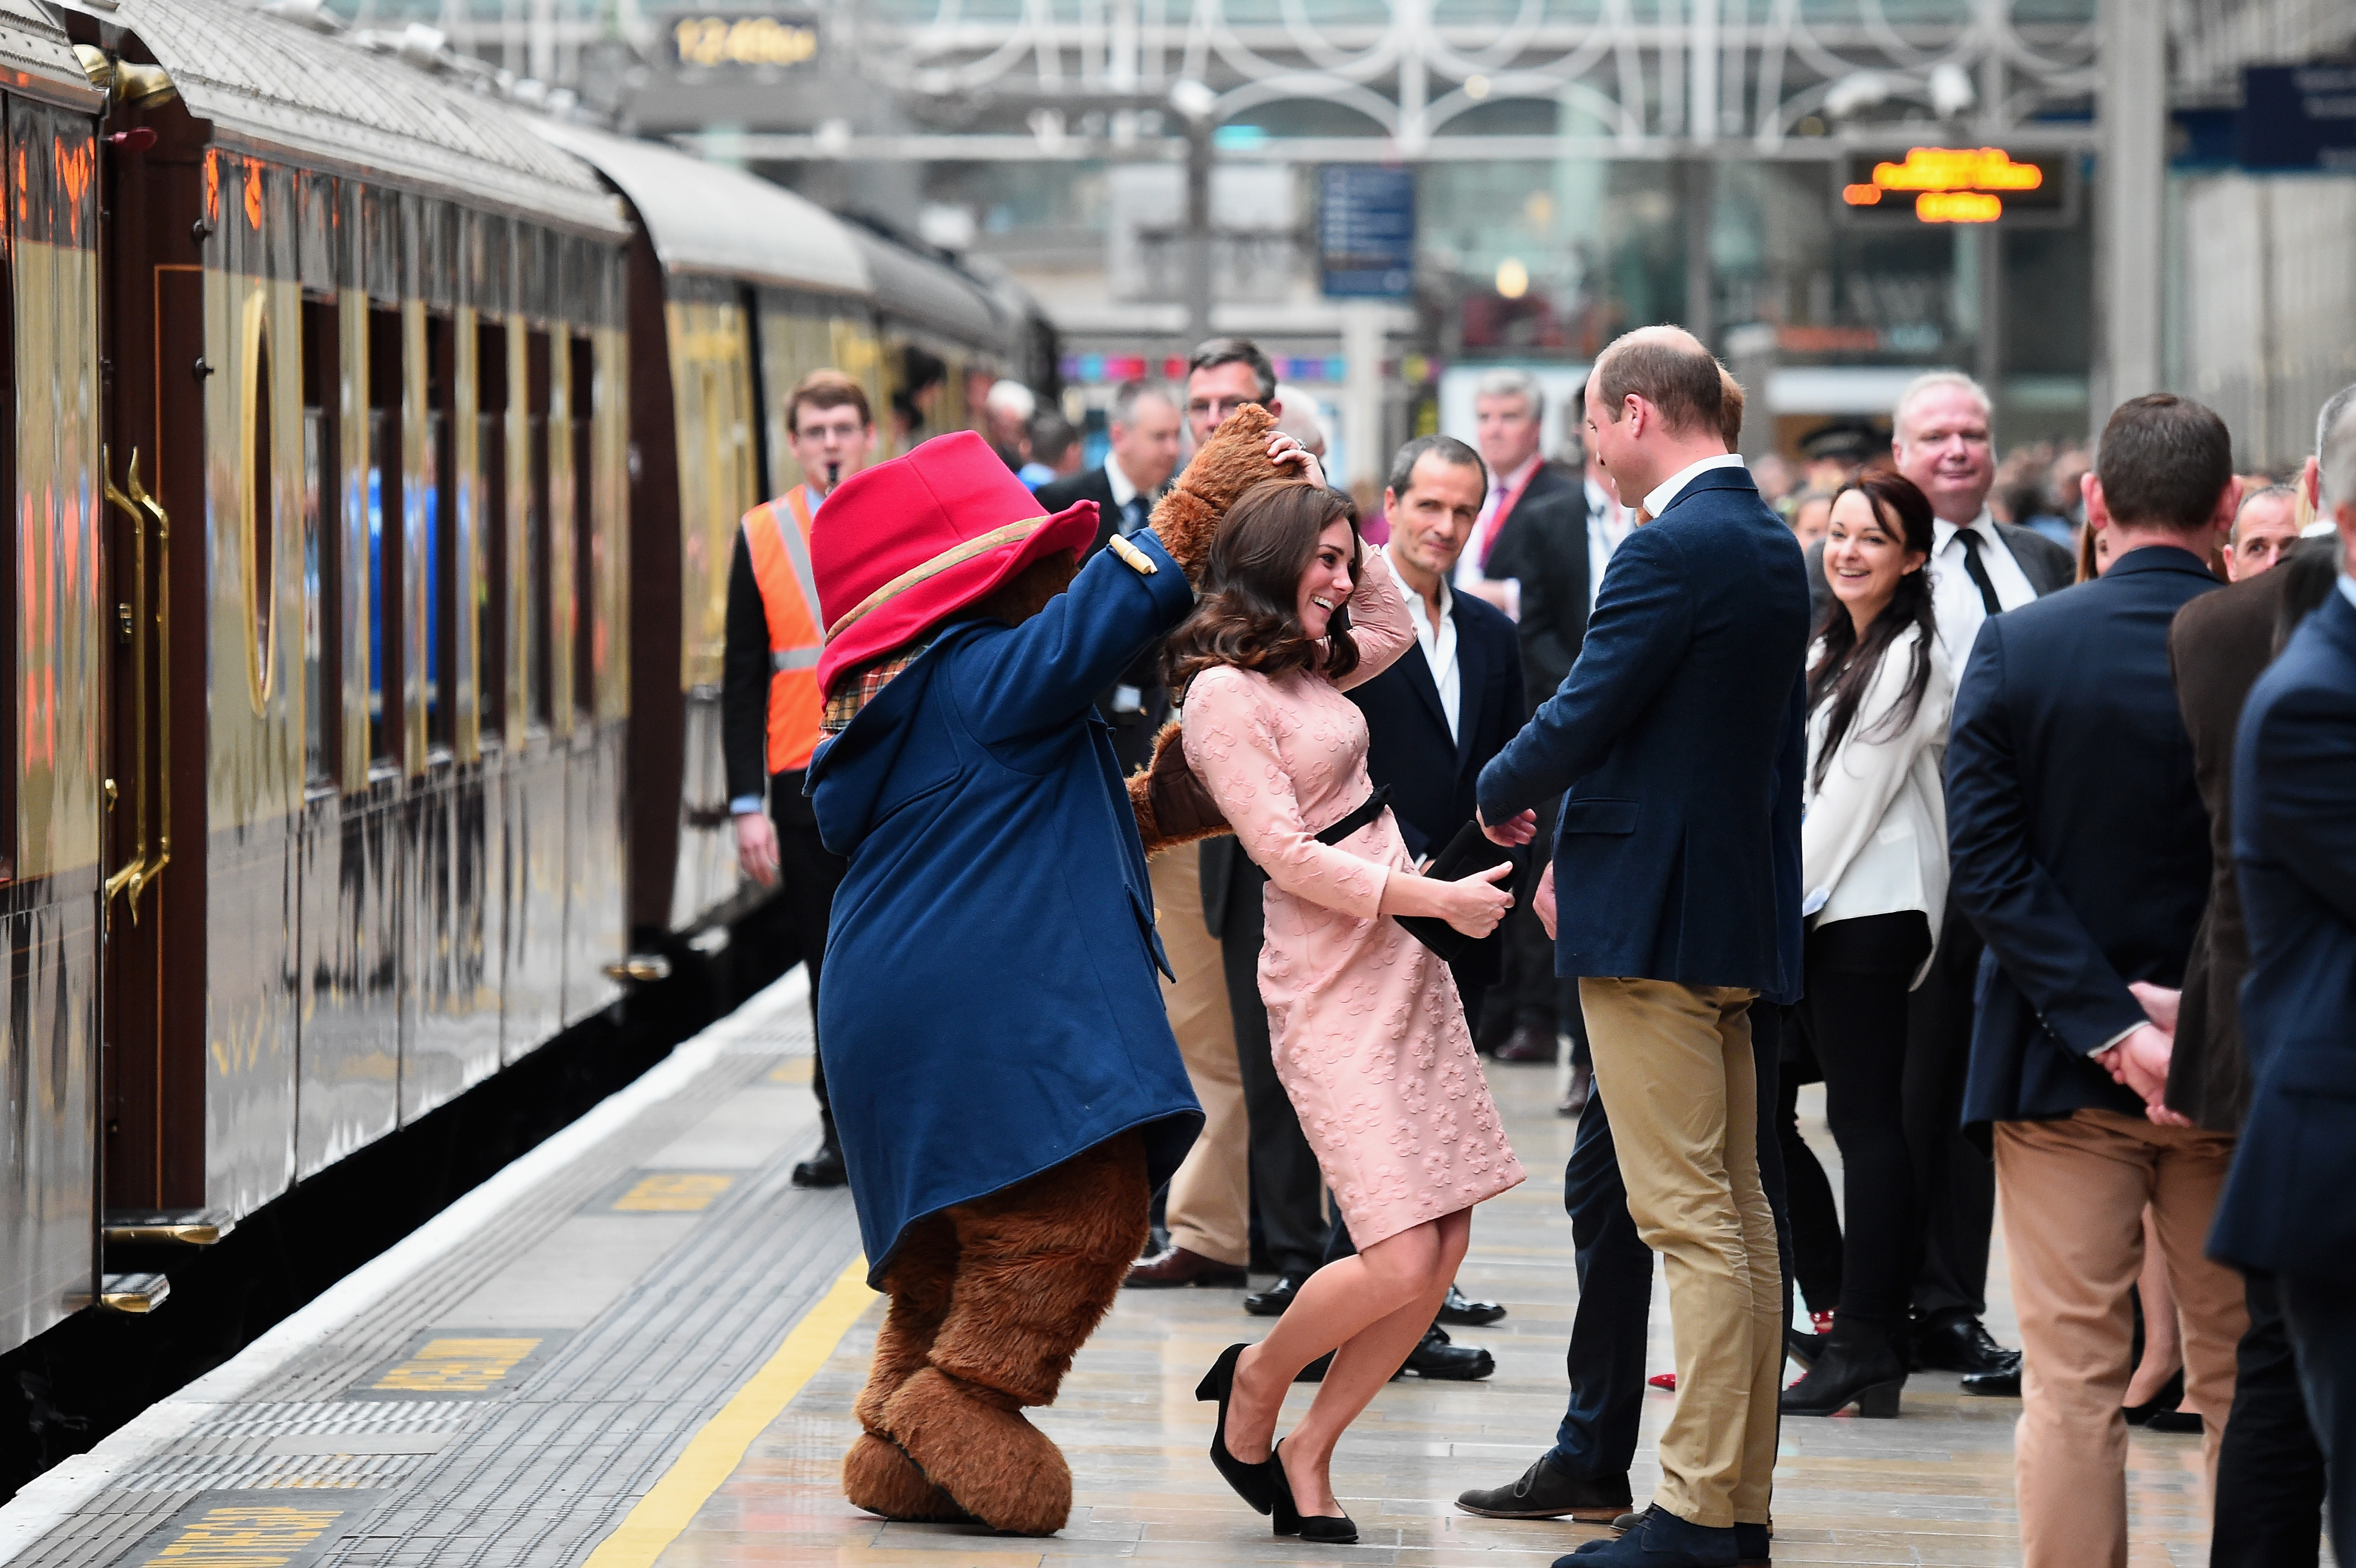 LONDON, ENGLAND - OCTOBER 16:  Paddington Bear dances with Catherine, Duchess of Cambridge and Prince William, Duke of Cambridge at the Charities Forum Event on board the Belmond Britigh Pullman train at Paddington Station on October 16, 2017 in London, England.  (Photo by Eamonn M. McCormack/Getty Images)